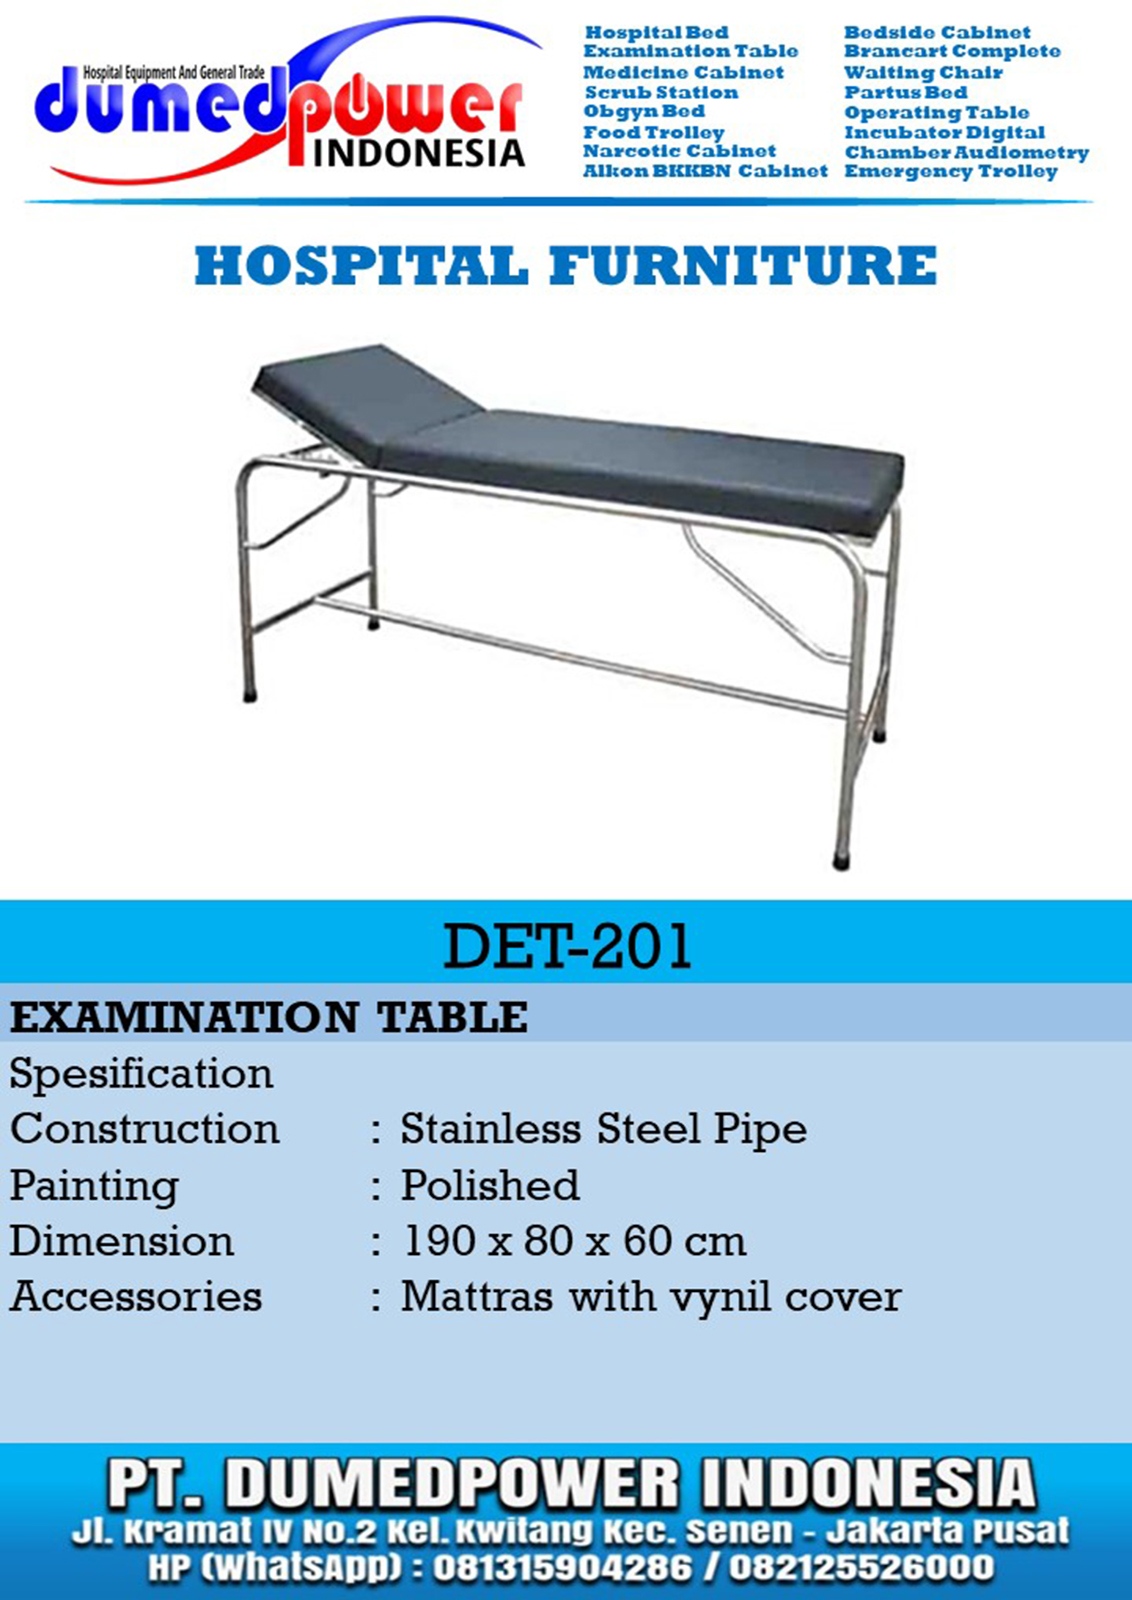 Examination Table DET-201